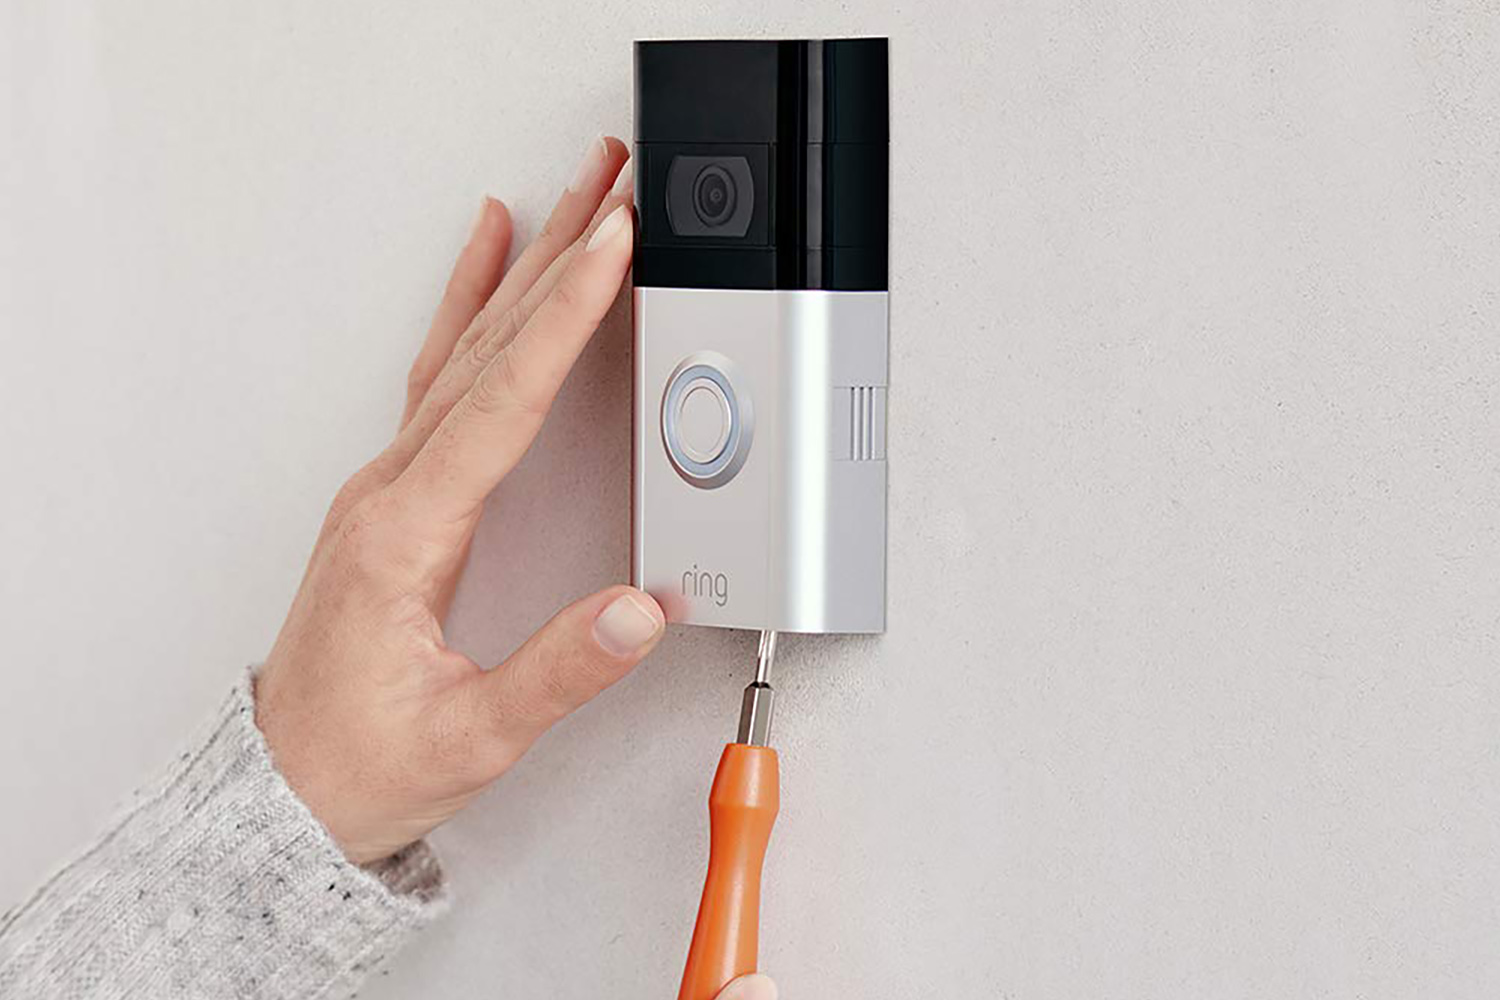 The doorbell is easy to install